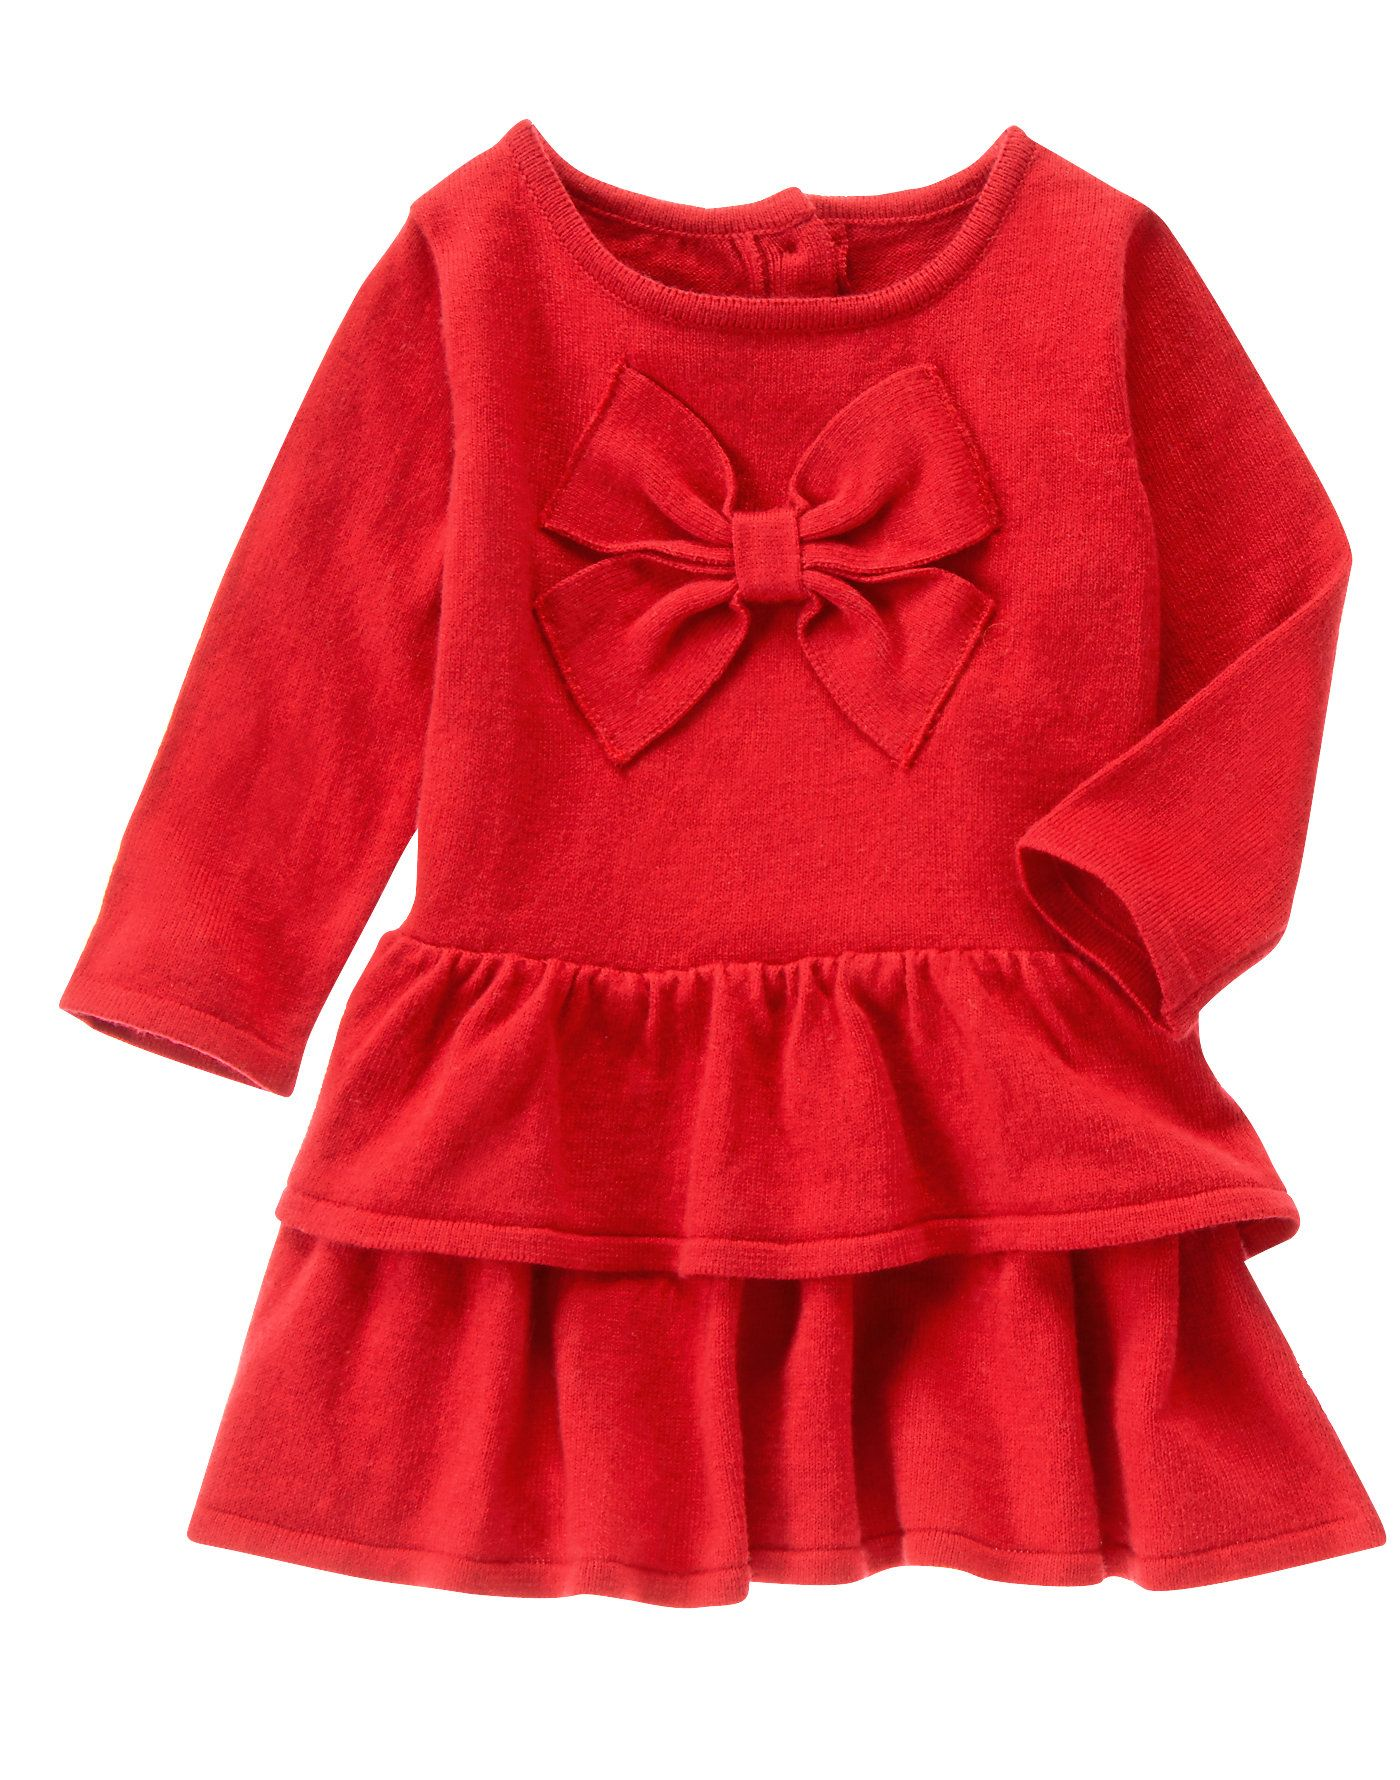 04c8a6234f24 Gymboree 0-3mos to 24mos  18.50 Bow Sweater Dress